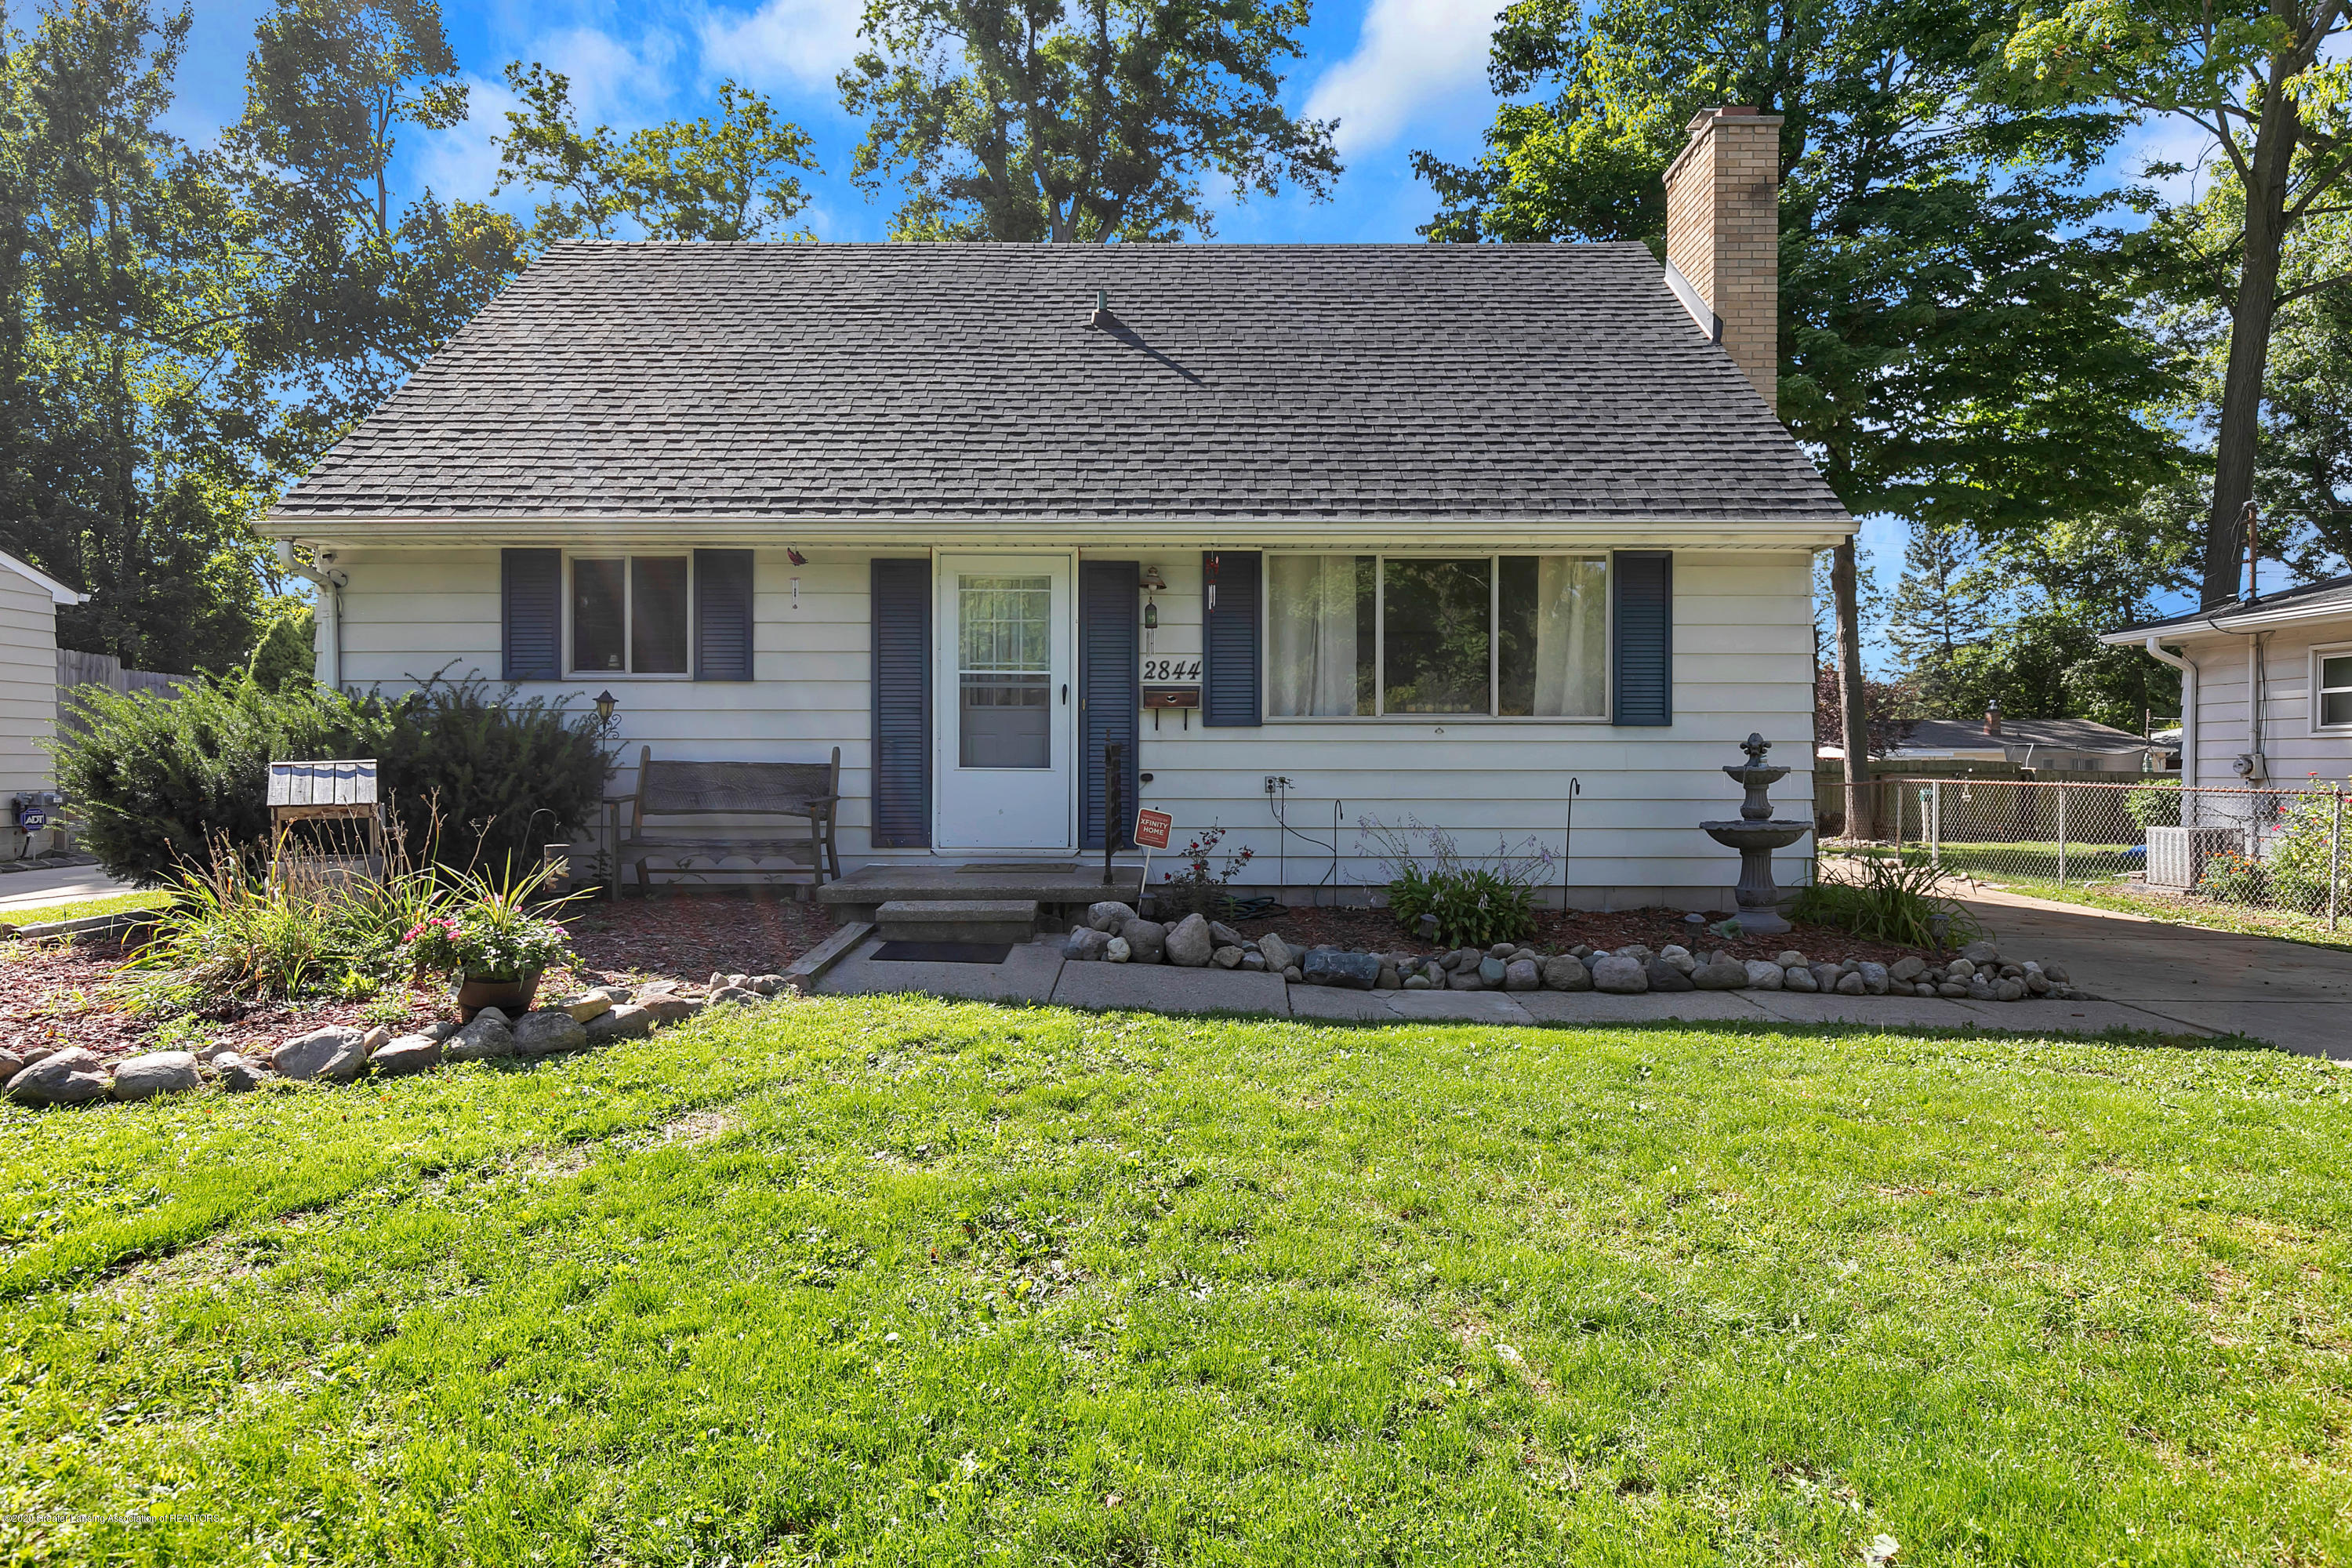 2844 S Deerfield Ave - 9I3A2600 - 1